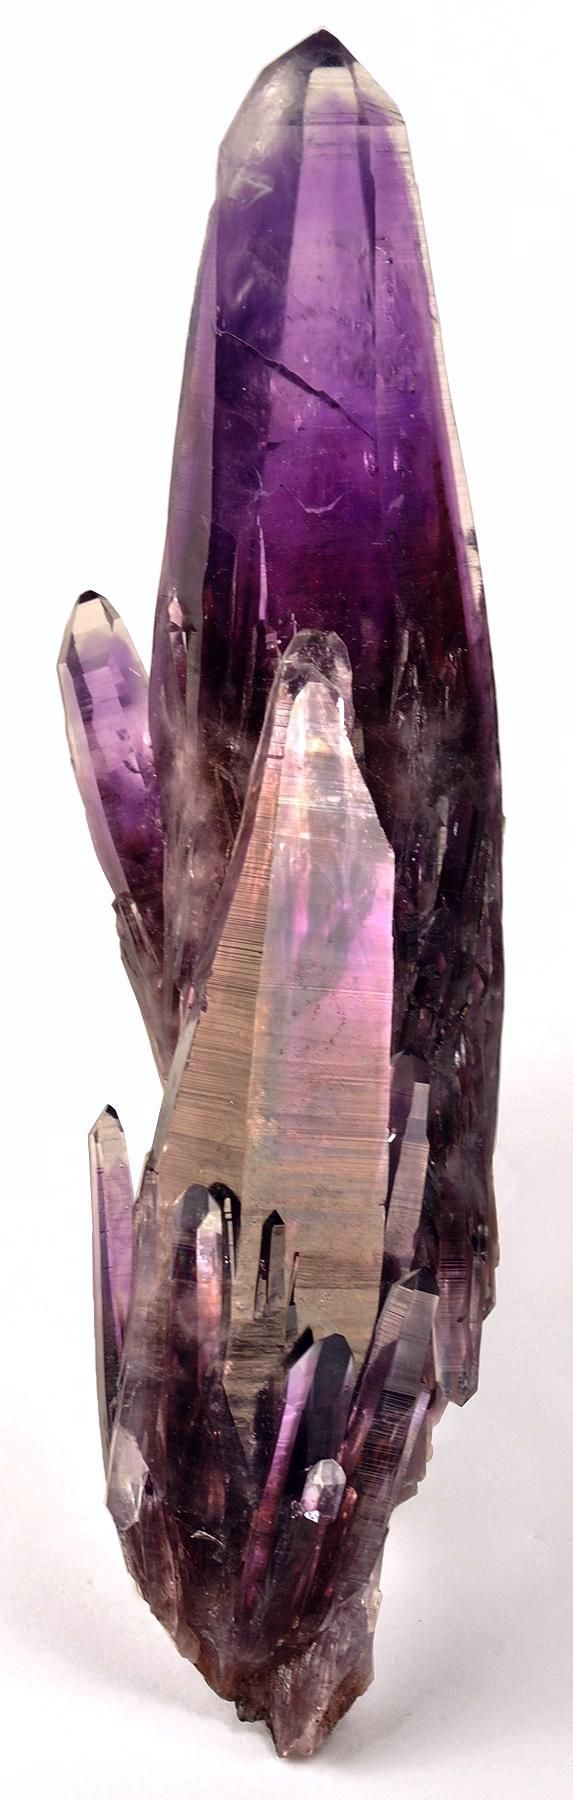 amethyst  color photography   the amethyst is a deep purple and the shade varies on the crystal